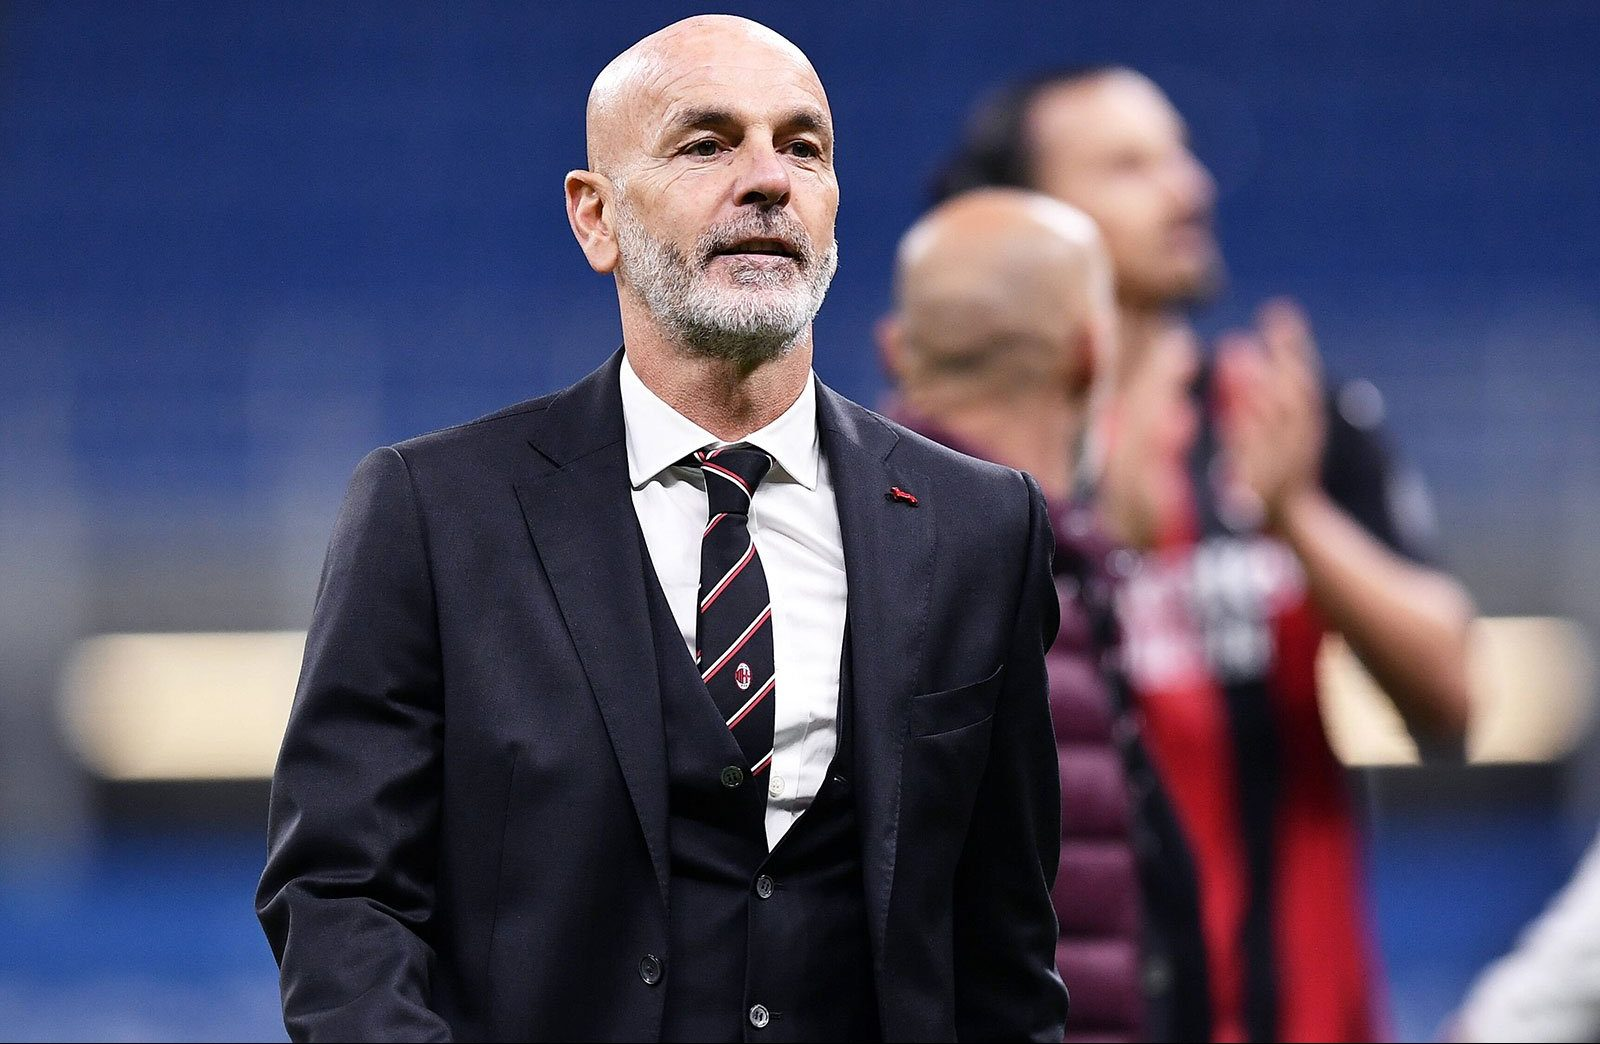 """Pioli: """"At Milan I feel in the right place at the right time, I work in  harmony with the club, winning the Scudetto? In April we will see where we  are"""" 